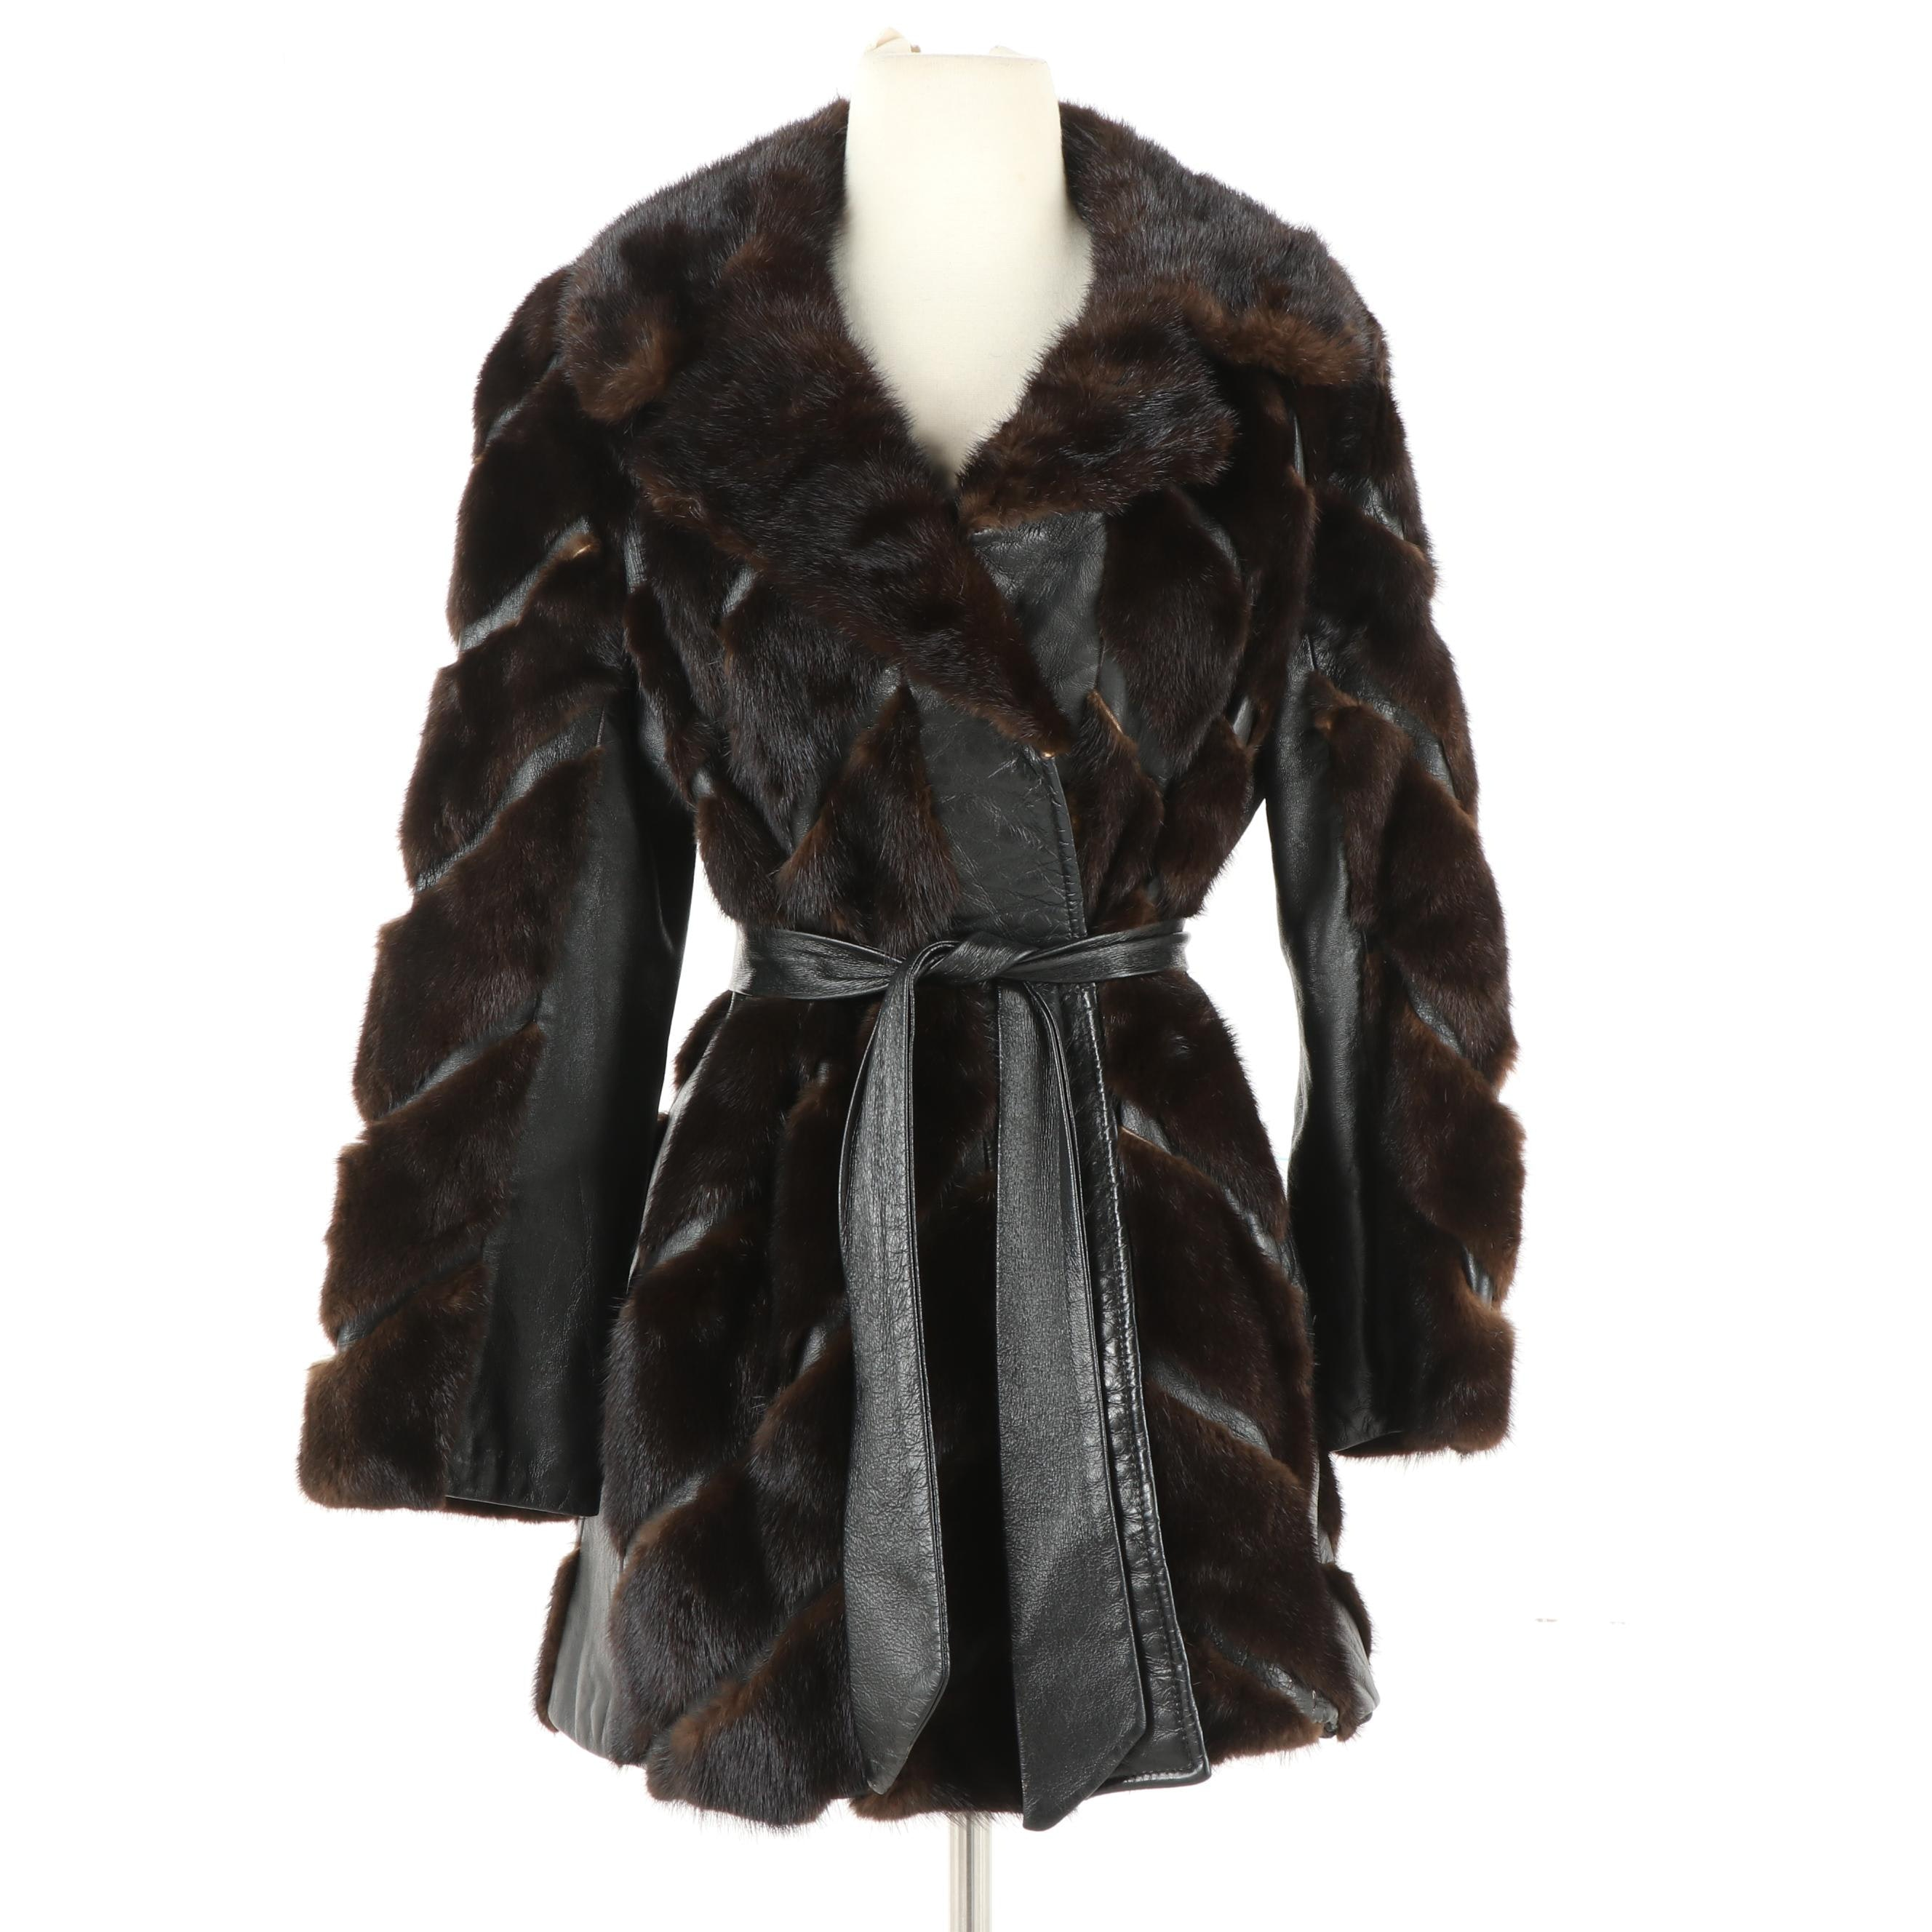 Charlotte Ford/Cownie Furriers Mahogany Mink Fur and Black Leather Coat, Vintage